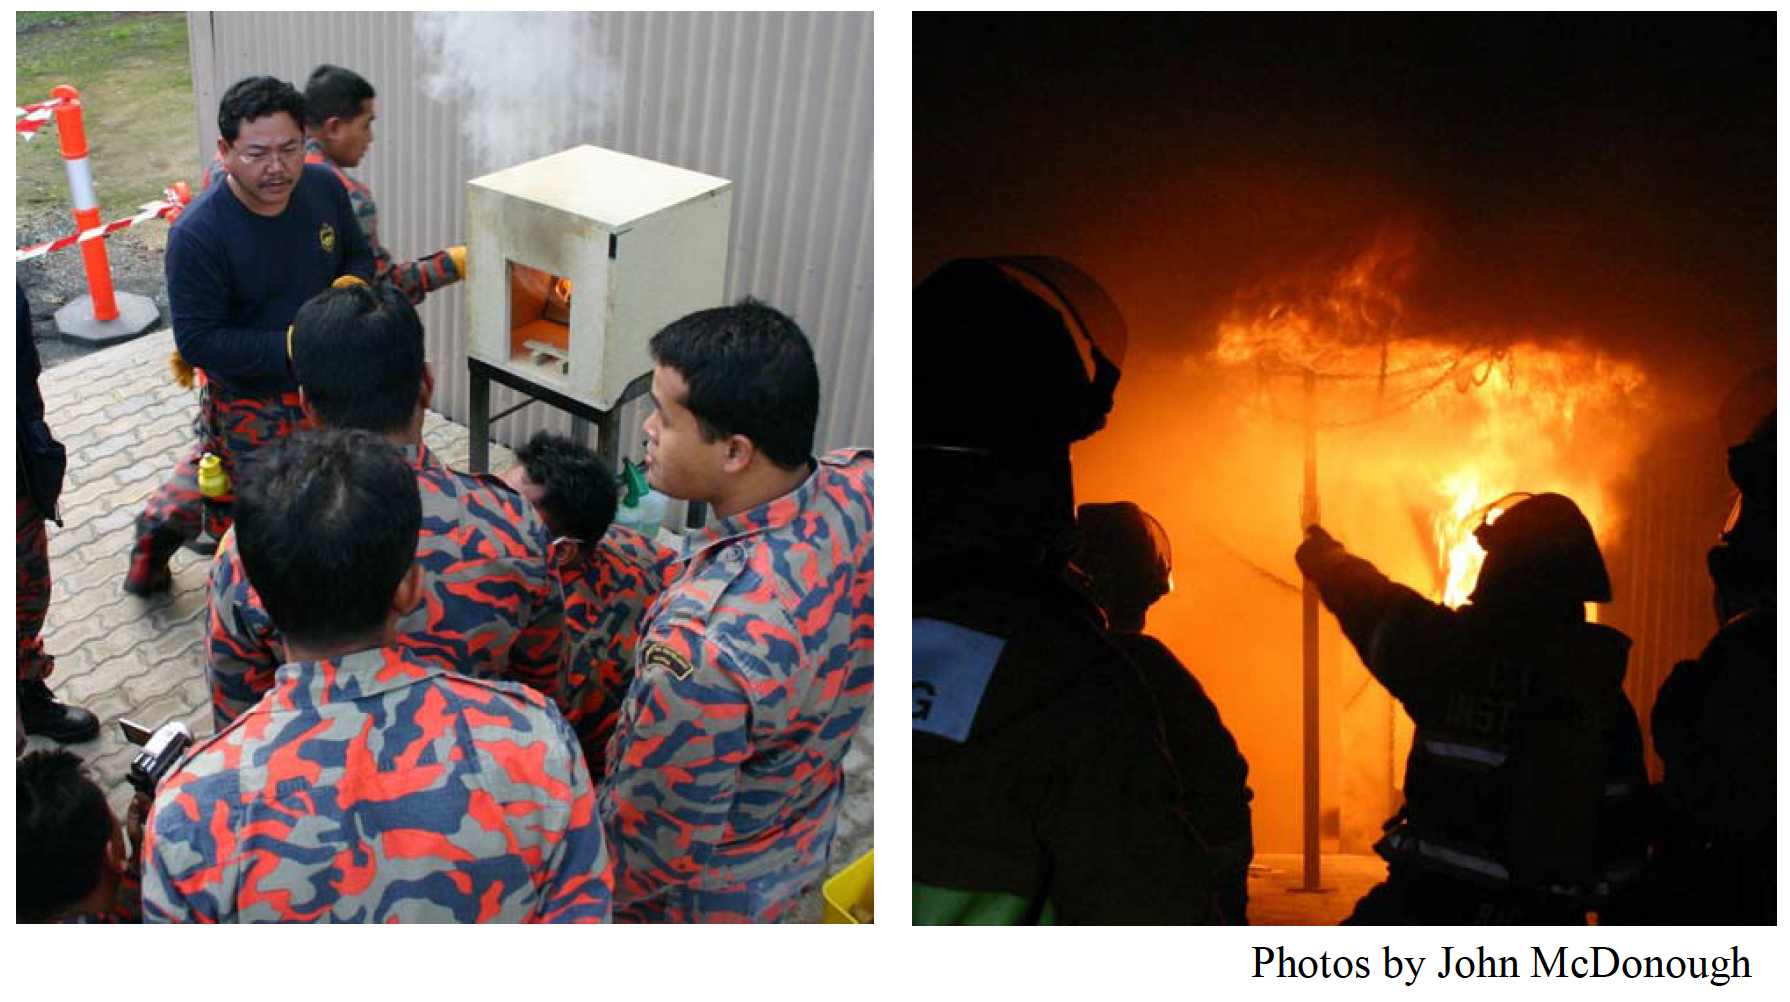 Ed Hartin (USA) and Nils Bergström (Sweden) deliver CBFT to a group of Malaysian fire officers attending training.